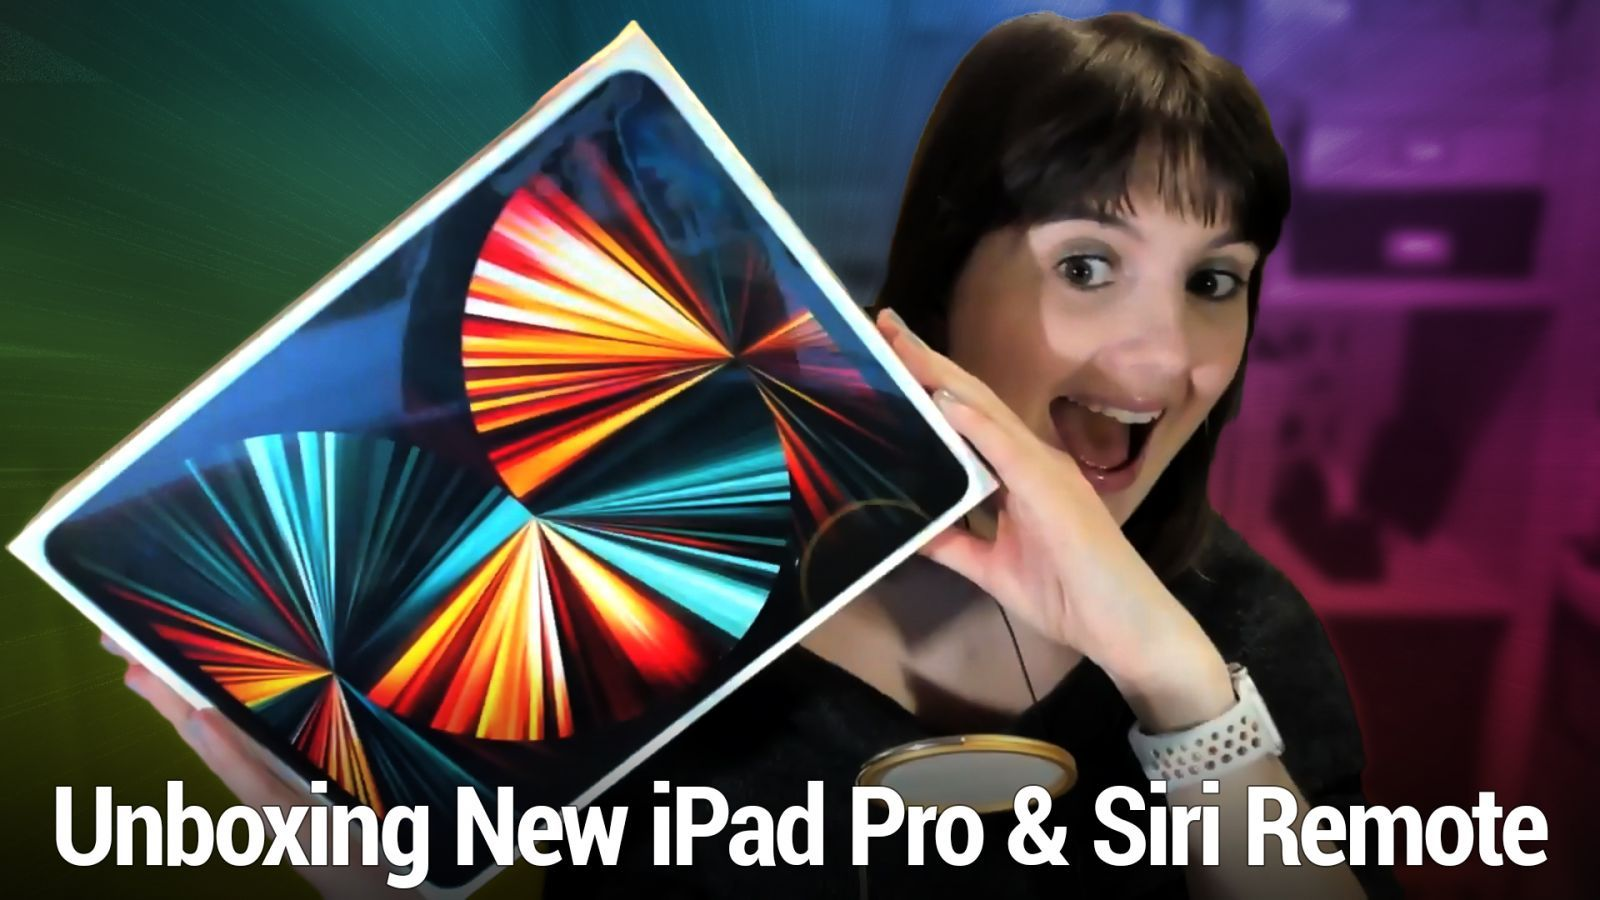 iOS 550: Unboxing the New iPad Pro & Siri Remote - Hands-on with Apple's newly launched products